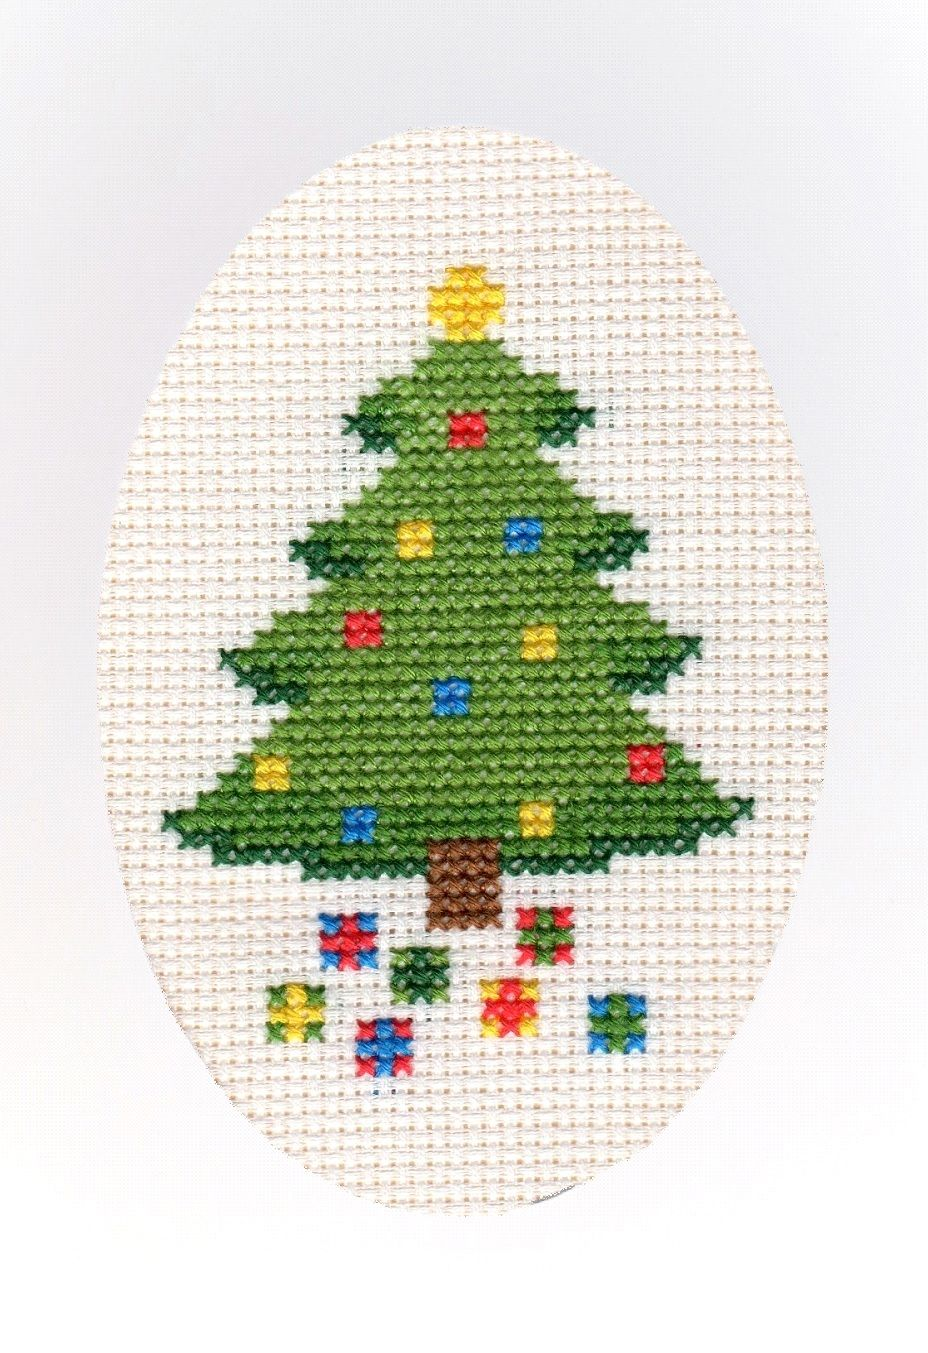 Christmas Tree & Presents - Cross Stitch A6 Card Kit